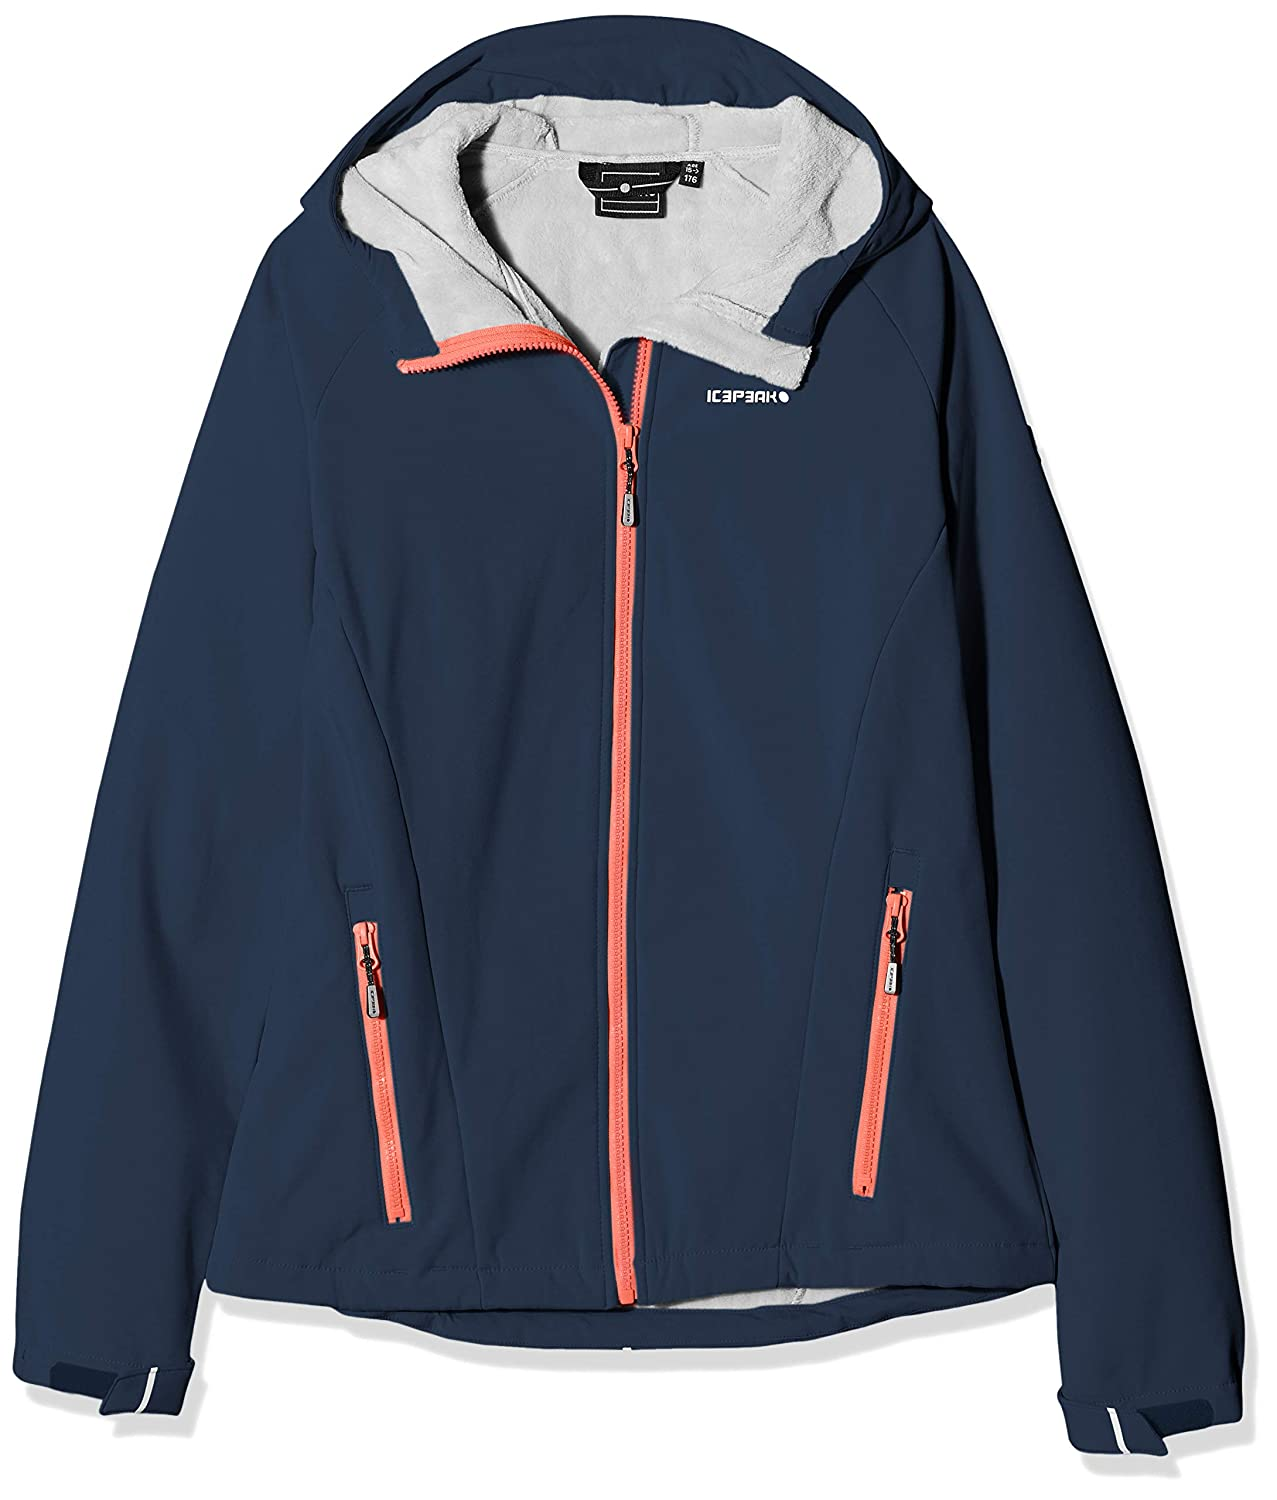 Icepeak Girls TUUA JR Softshell Jacket